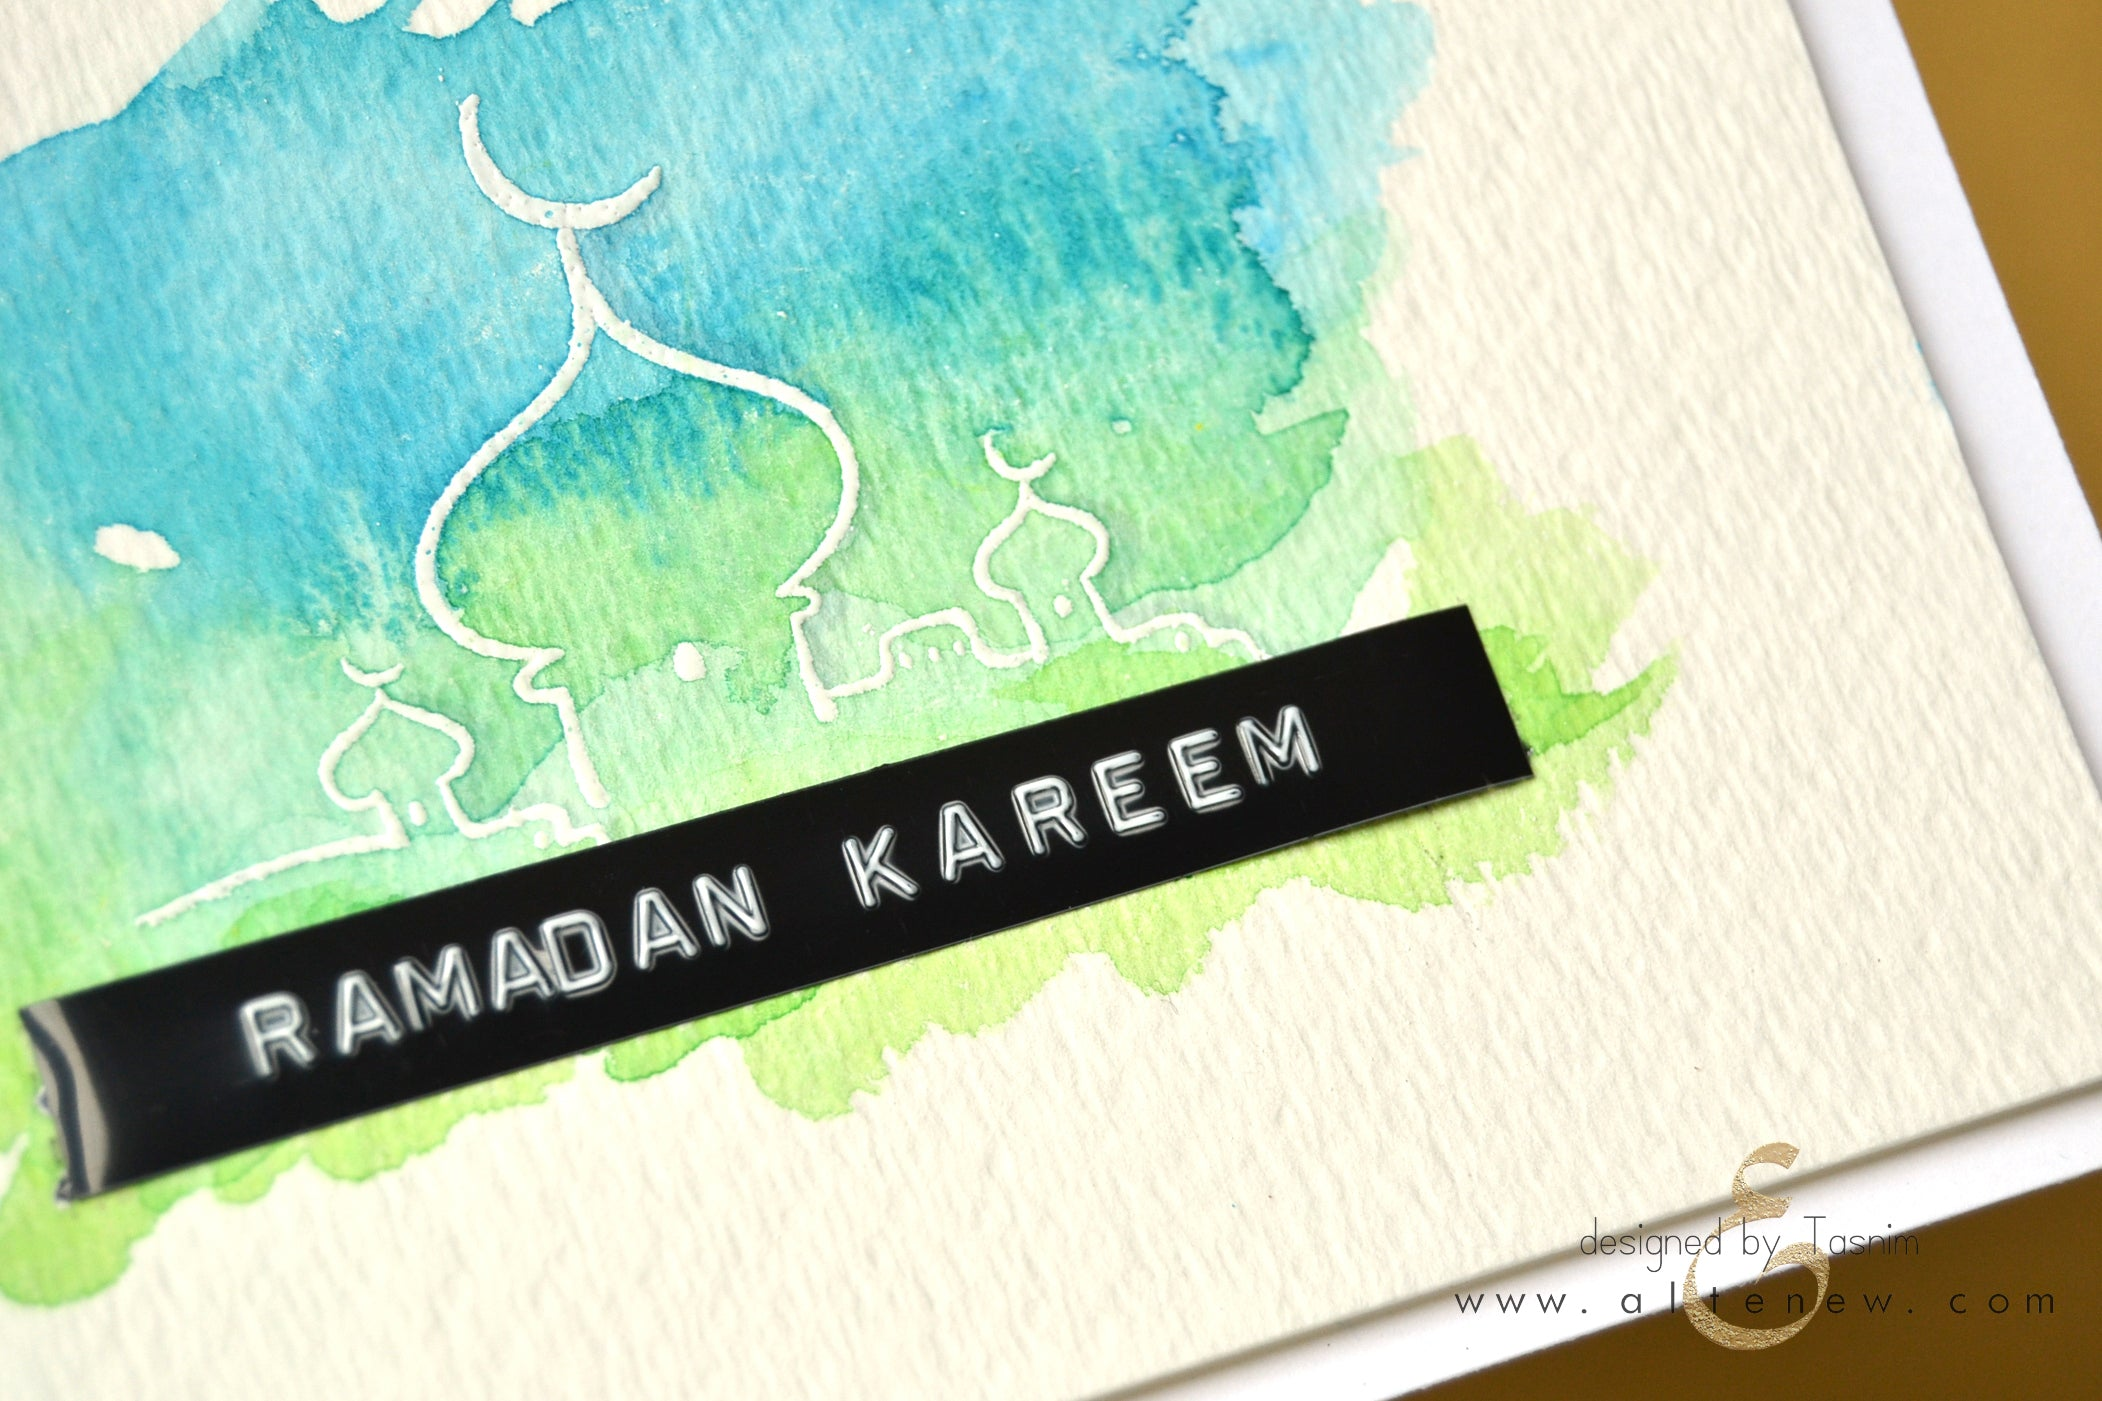 Greetings for end of ramadan image collections greeting card examples focus ramadan greetings eid greetings altenew i started with a very simple card using the emboss kristyandbryce Gallery